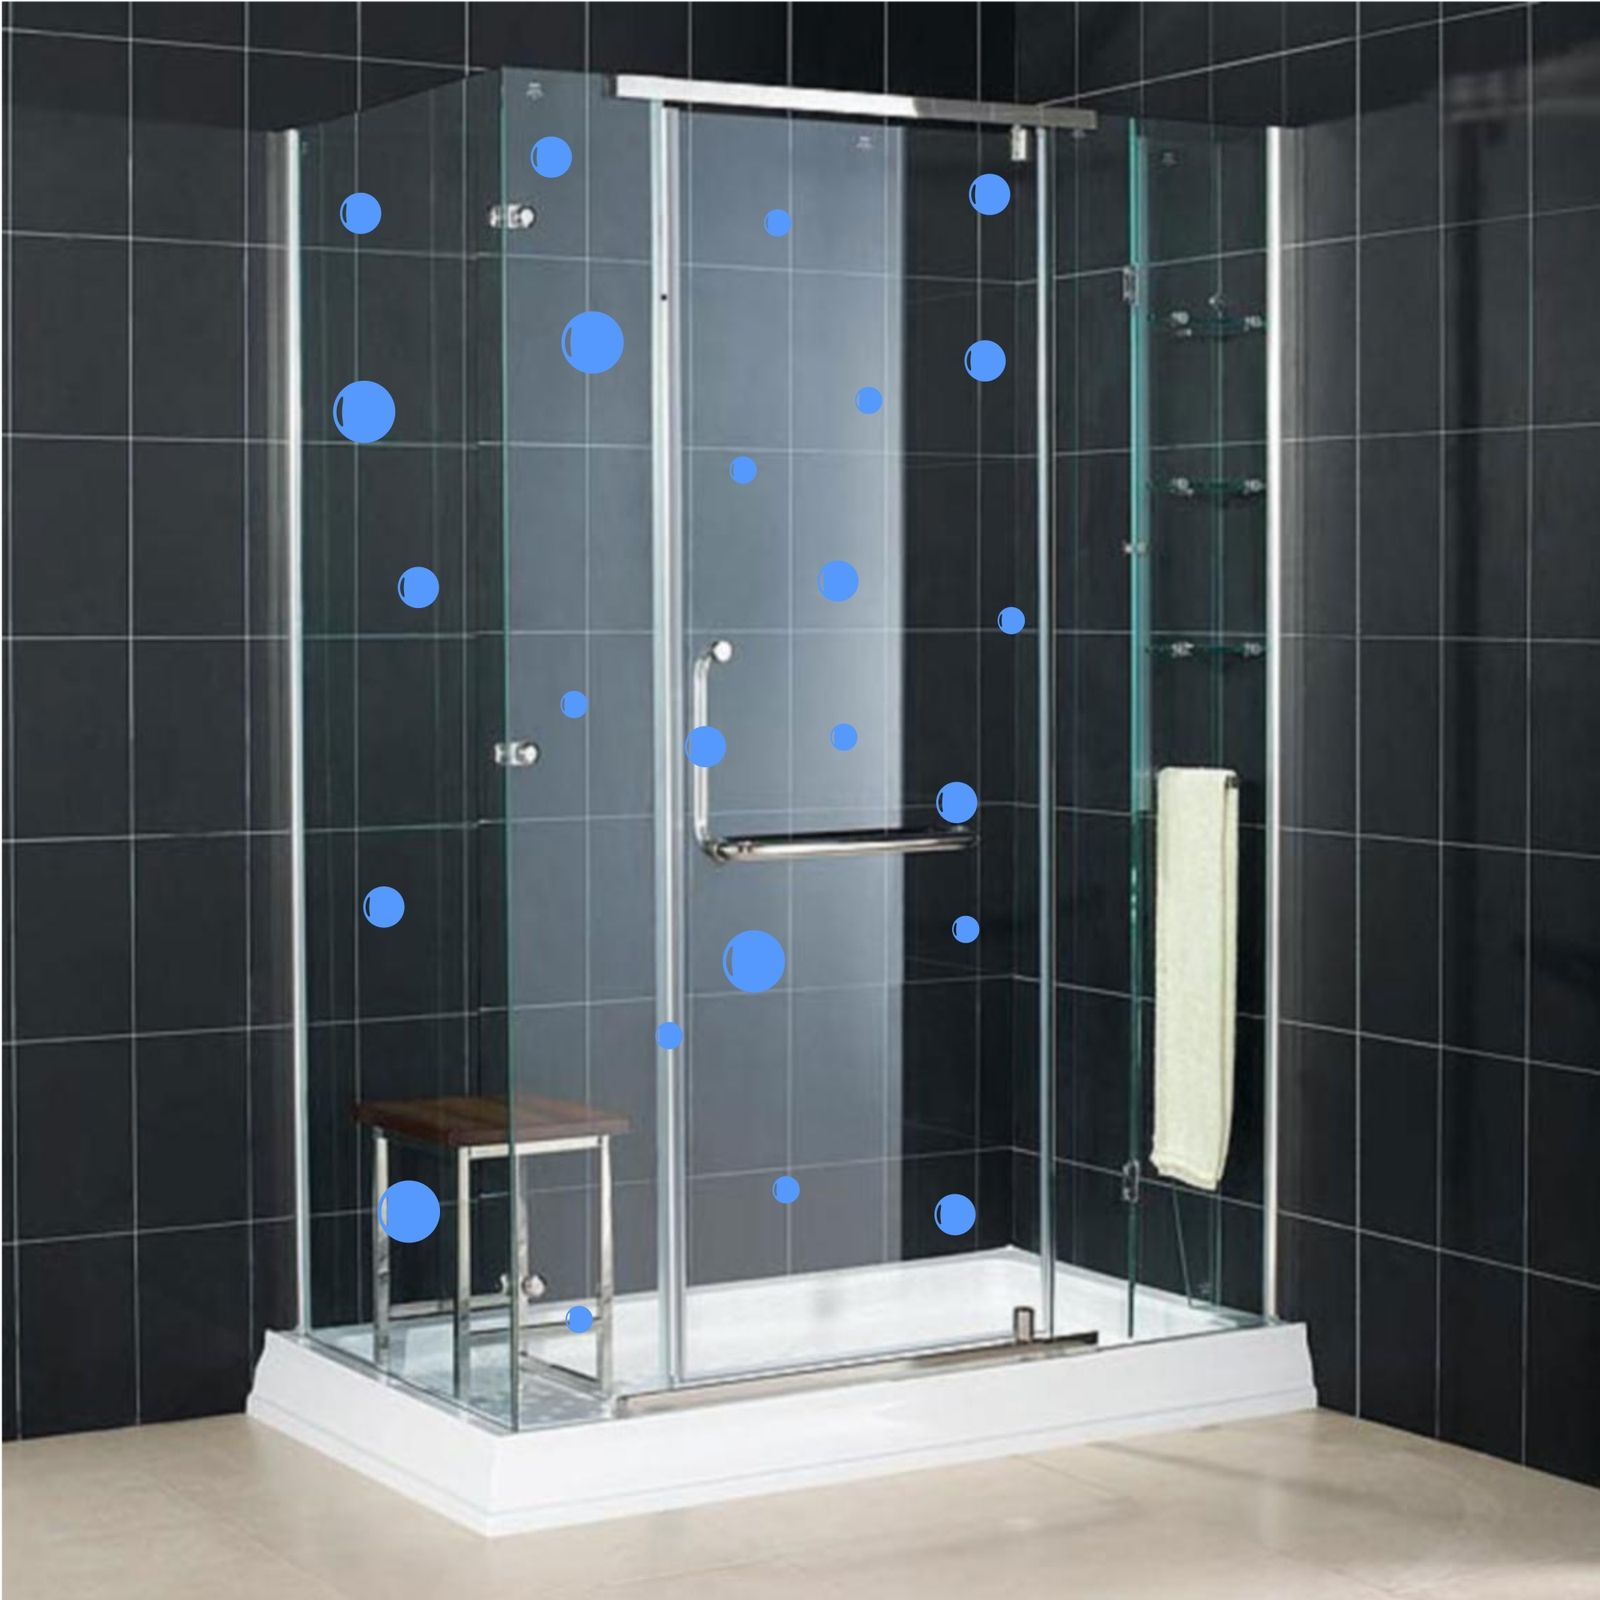 24 BUBBLE WALL STICKERS SAFTEY GLASS MANIFESTATION TILE